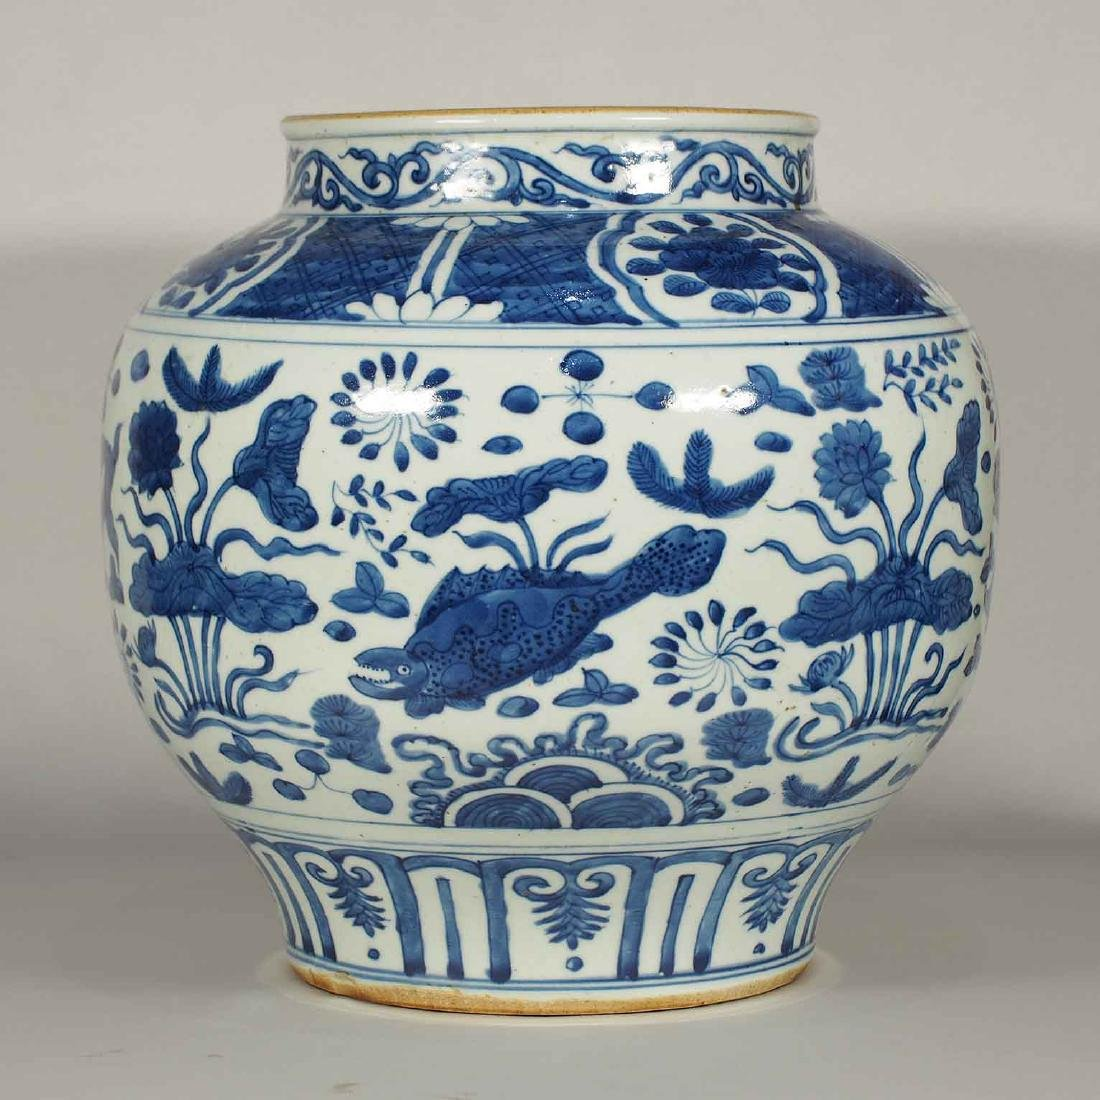 Jar with Fishes in a Pond Design, Wanli, Ming Dynasty - 2